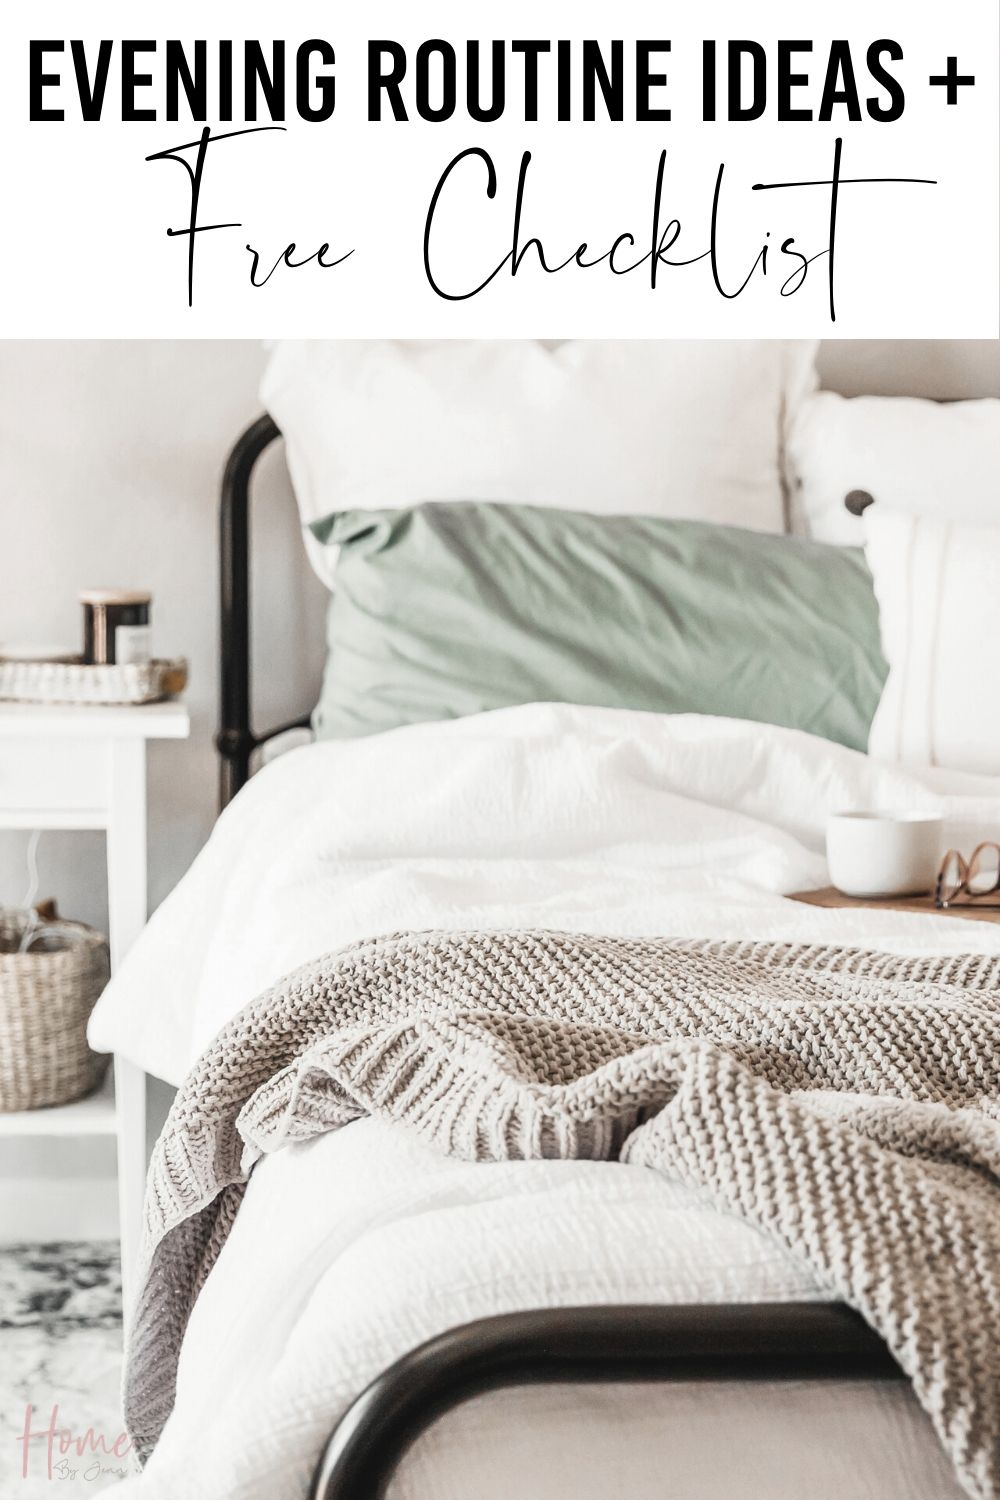 Organize your evenings with an evening routine. Grab these evening routine ideas plus free checklist. #eveningroutine #routines #schedule #eveningschedule #timesavingtip #timemanagement via @homebyjenn